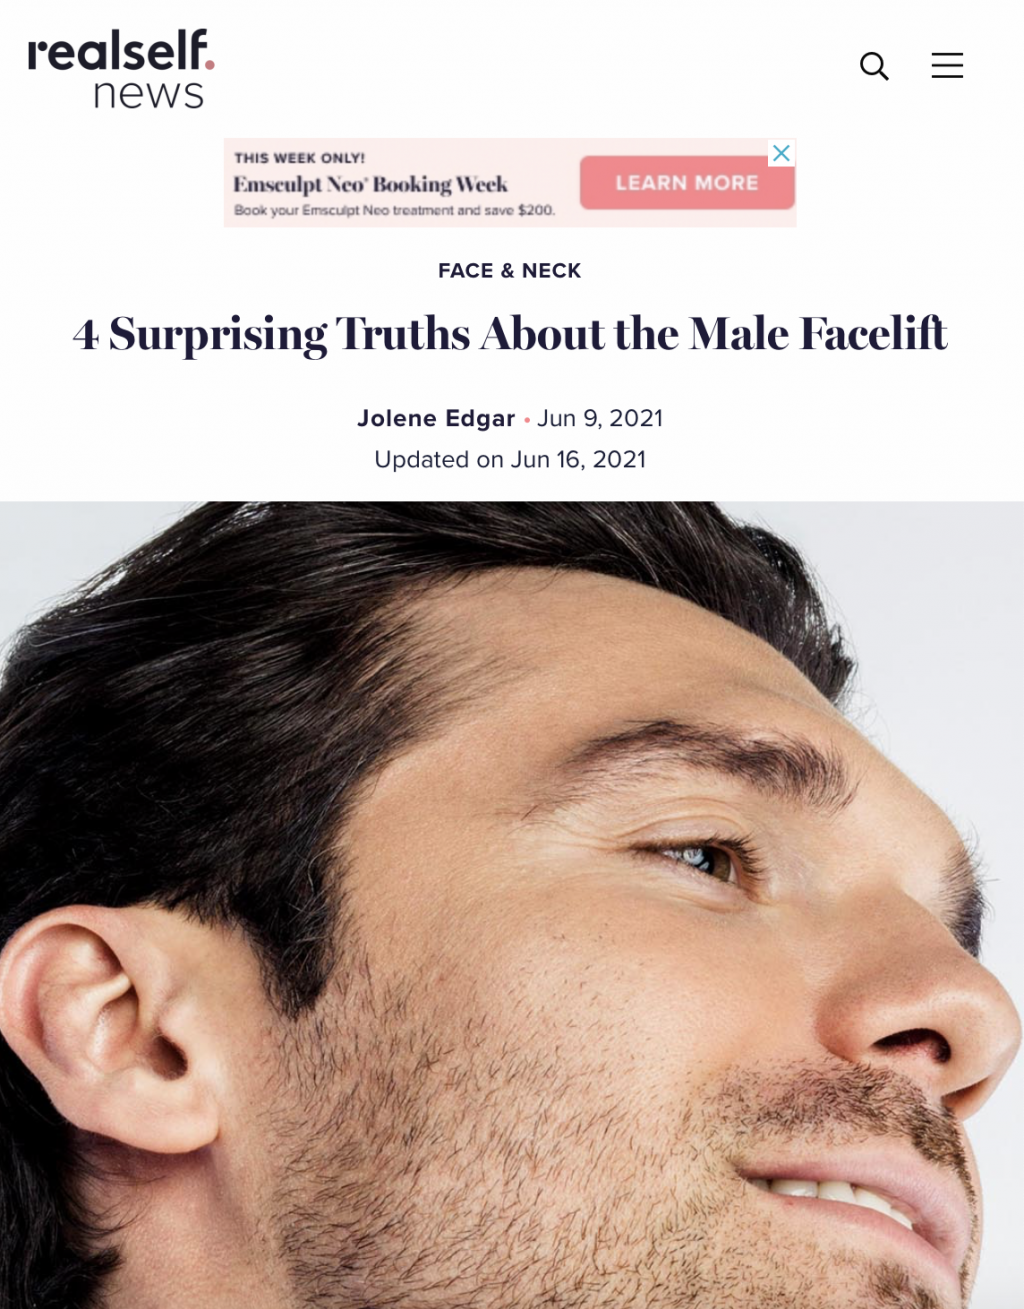 Real Self News article thumbnail with close-up image of a male's side face highlighting the beard and right ear.